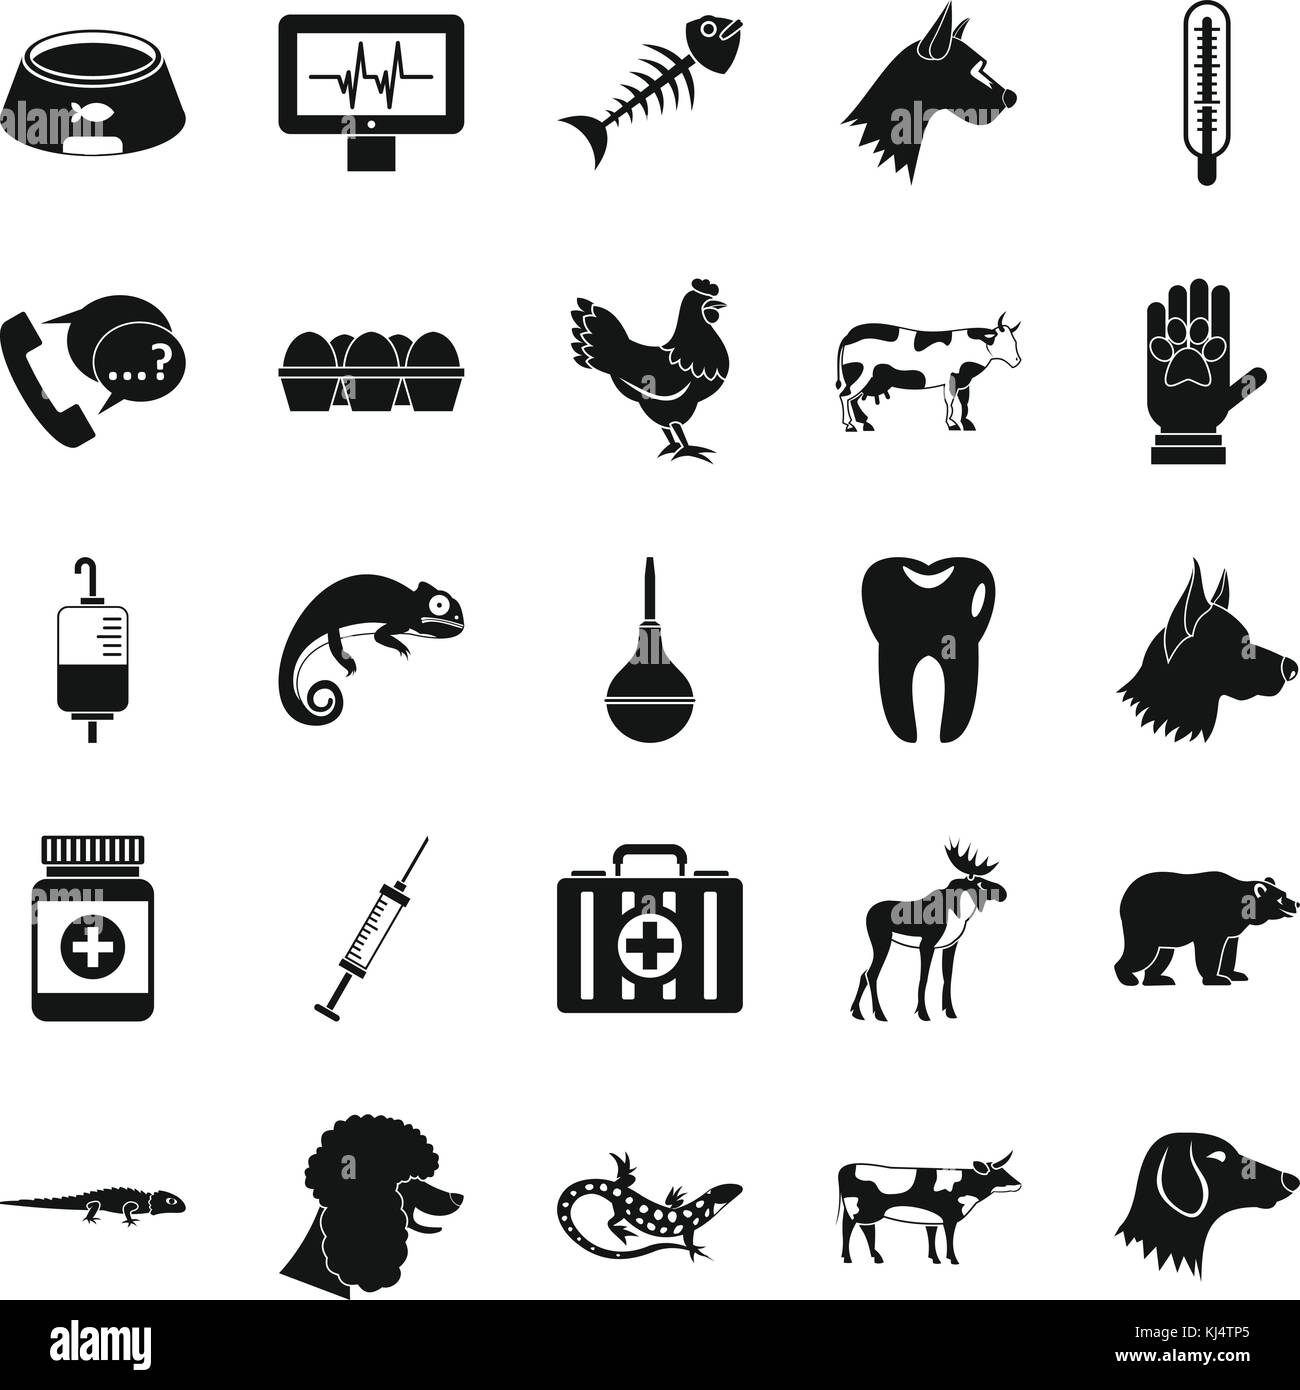 Cow leech icons set, simple style - Stock Image